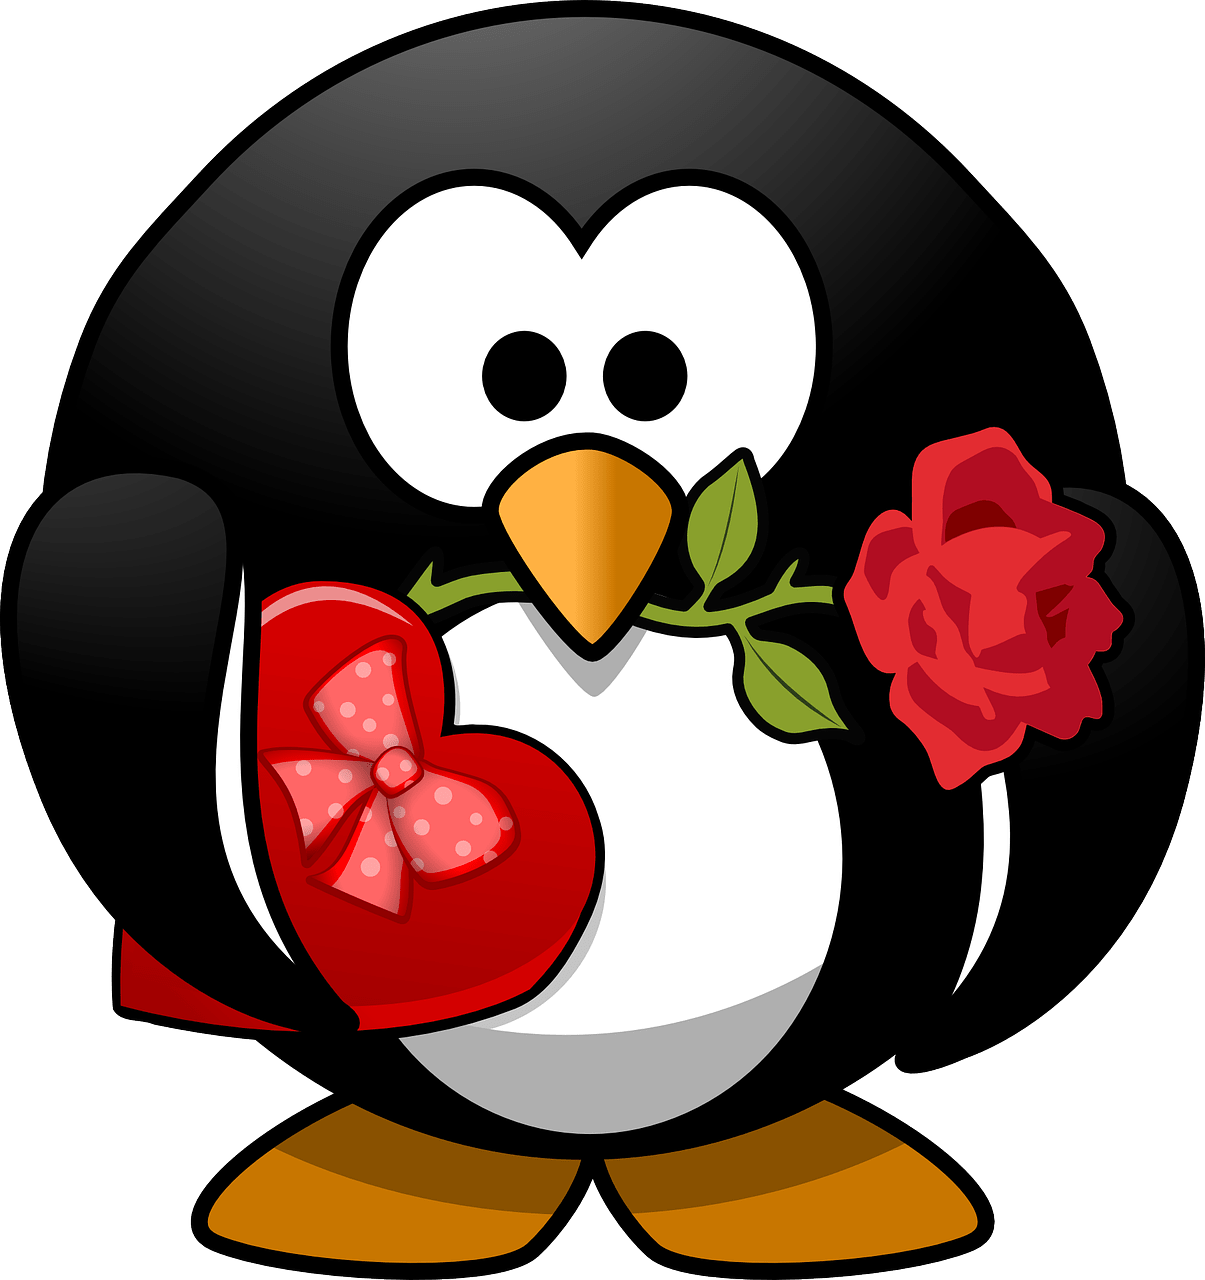 Penguin holding chocolate and a flower.